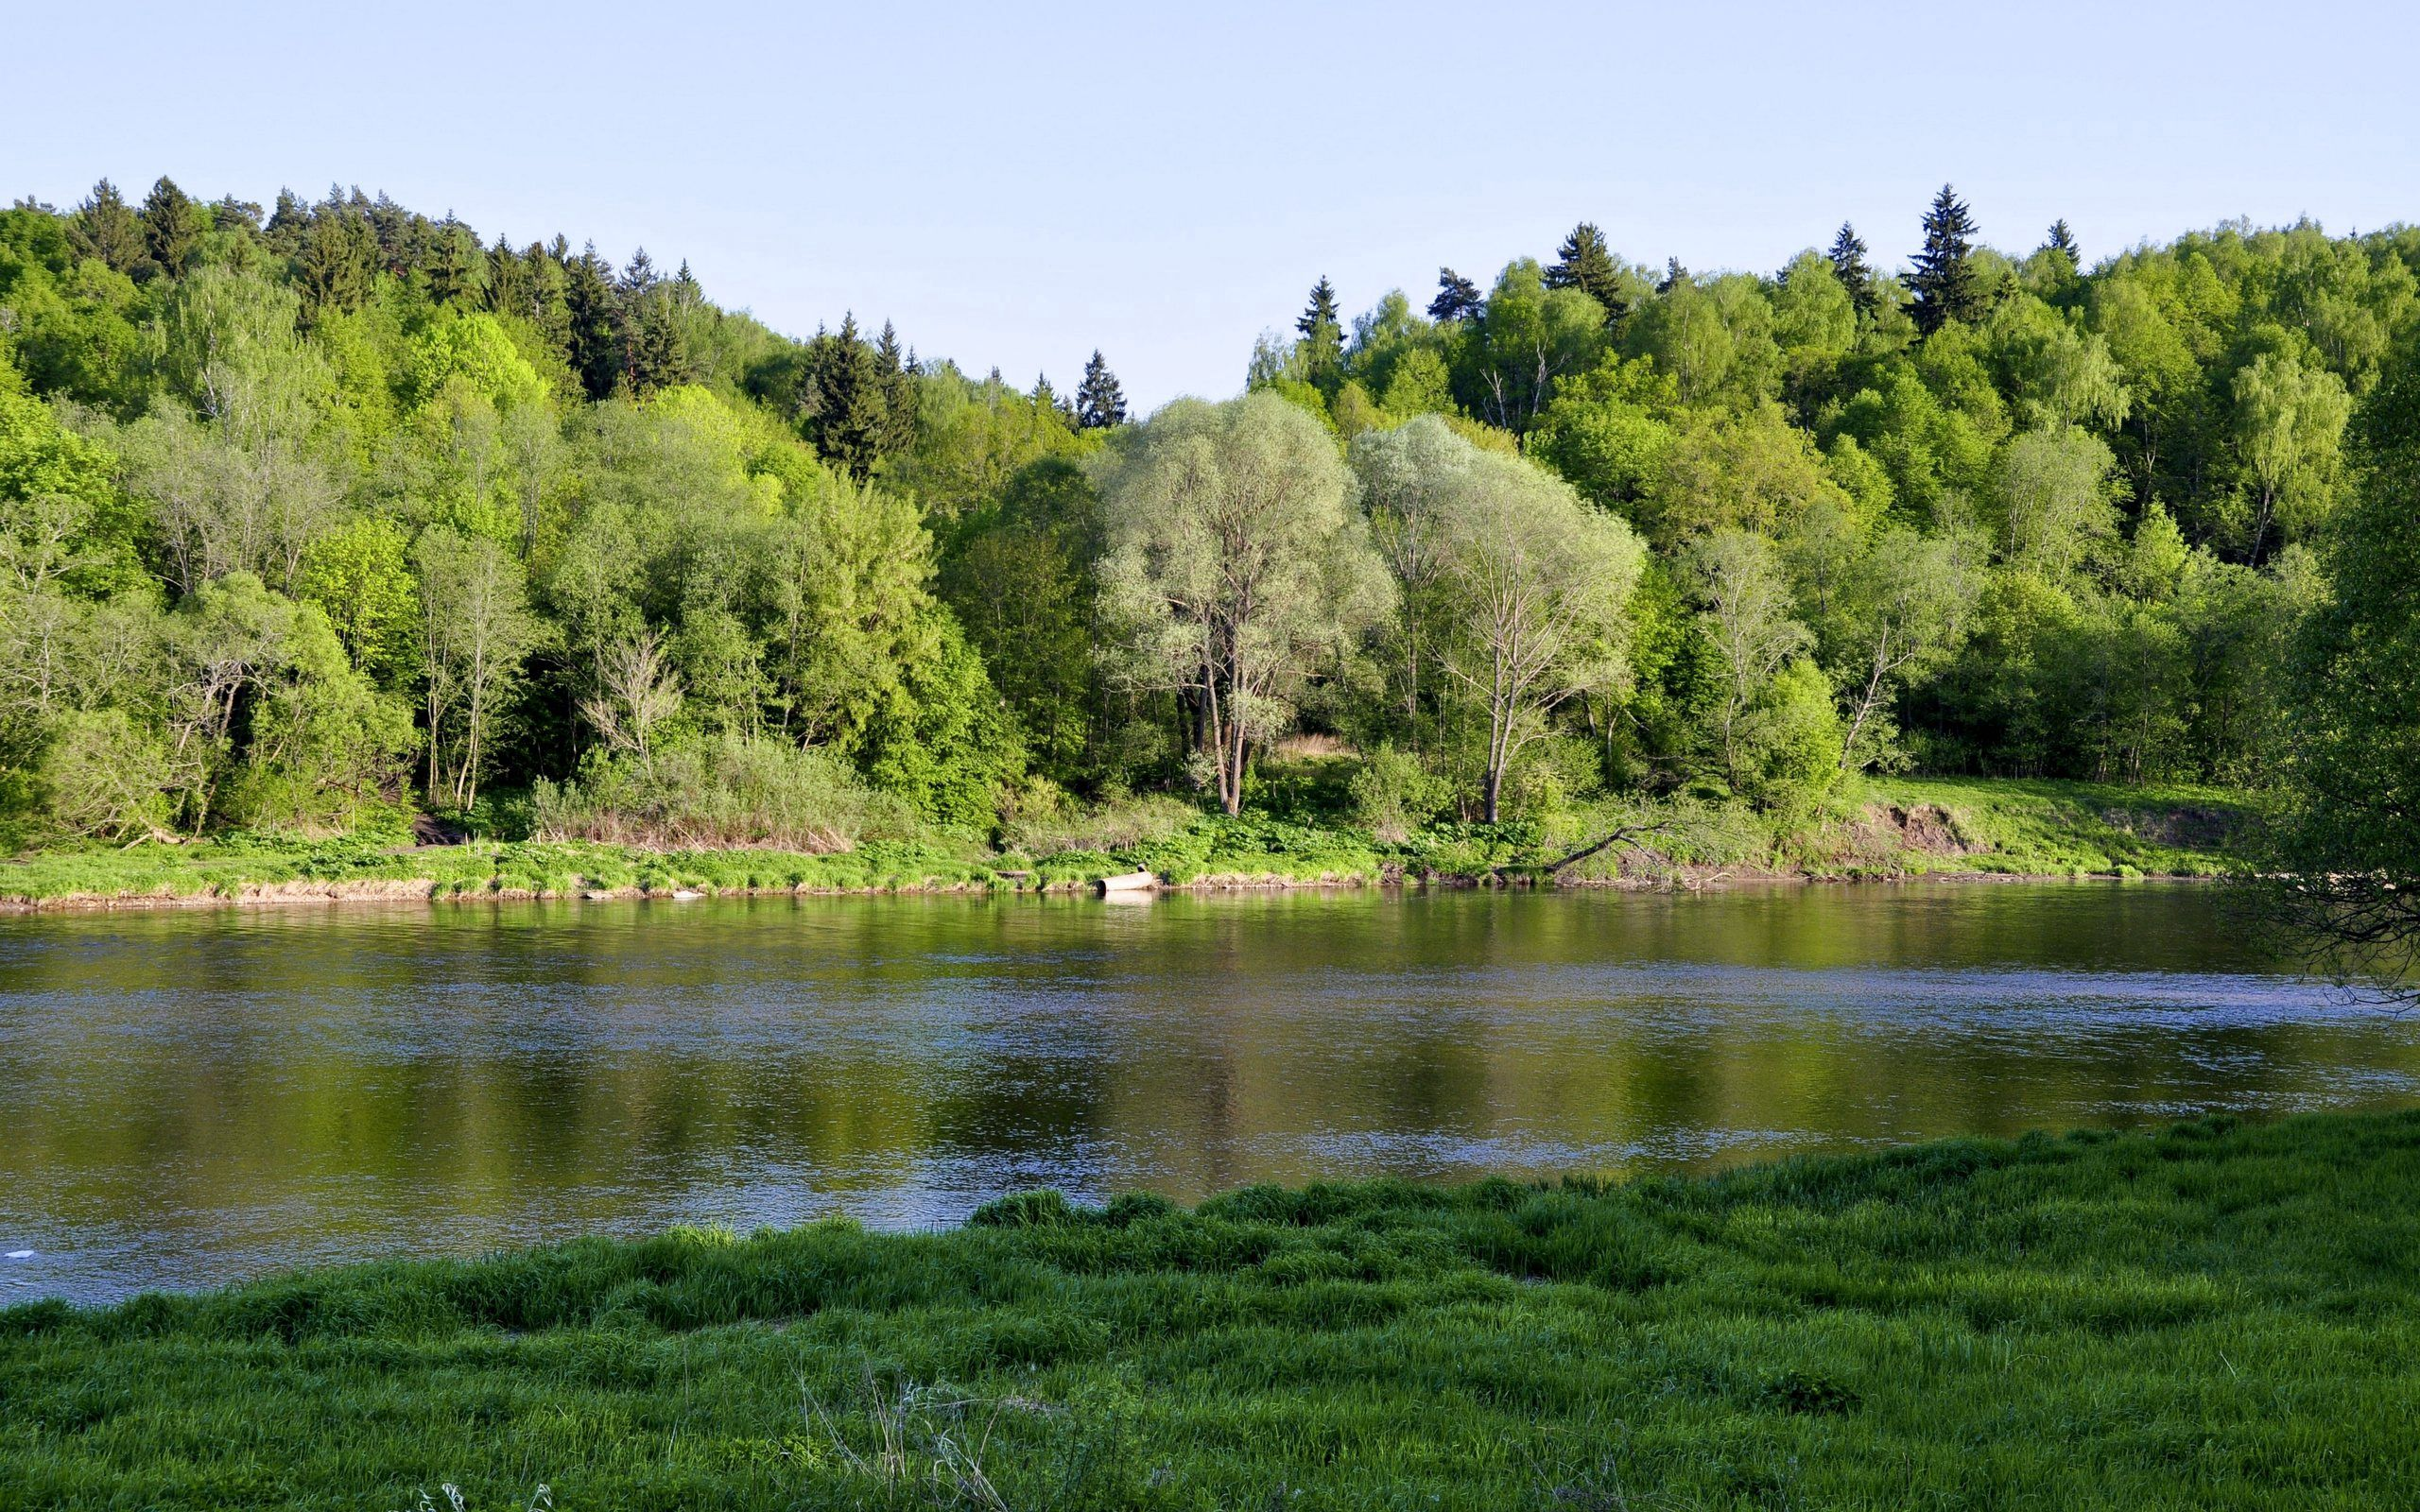 59189 download wallpaper Nature, Rivers, Trees, Grass, Shore, Bank screensavers and pictures for free